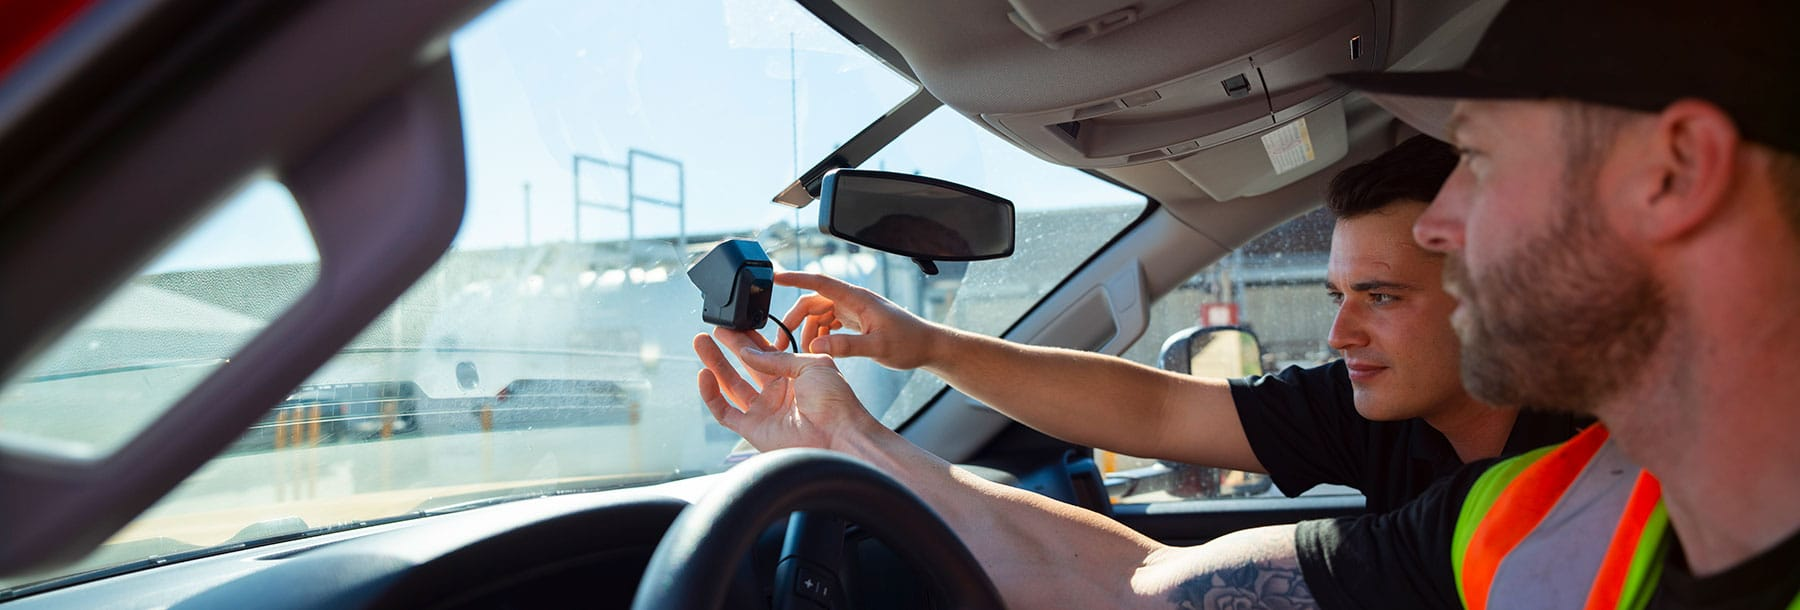 Dash Cams in the Wild: Fleet Managers Share Safety Success Stories